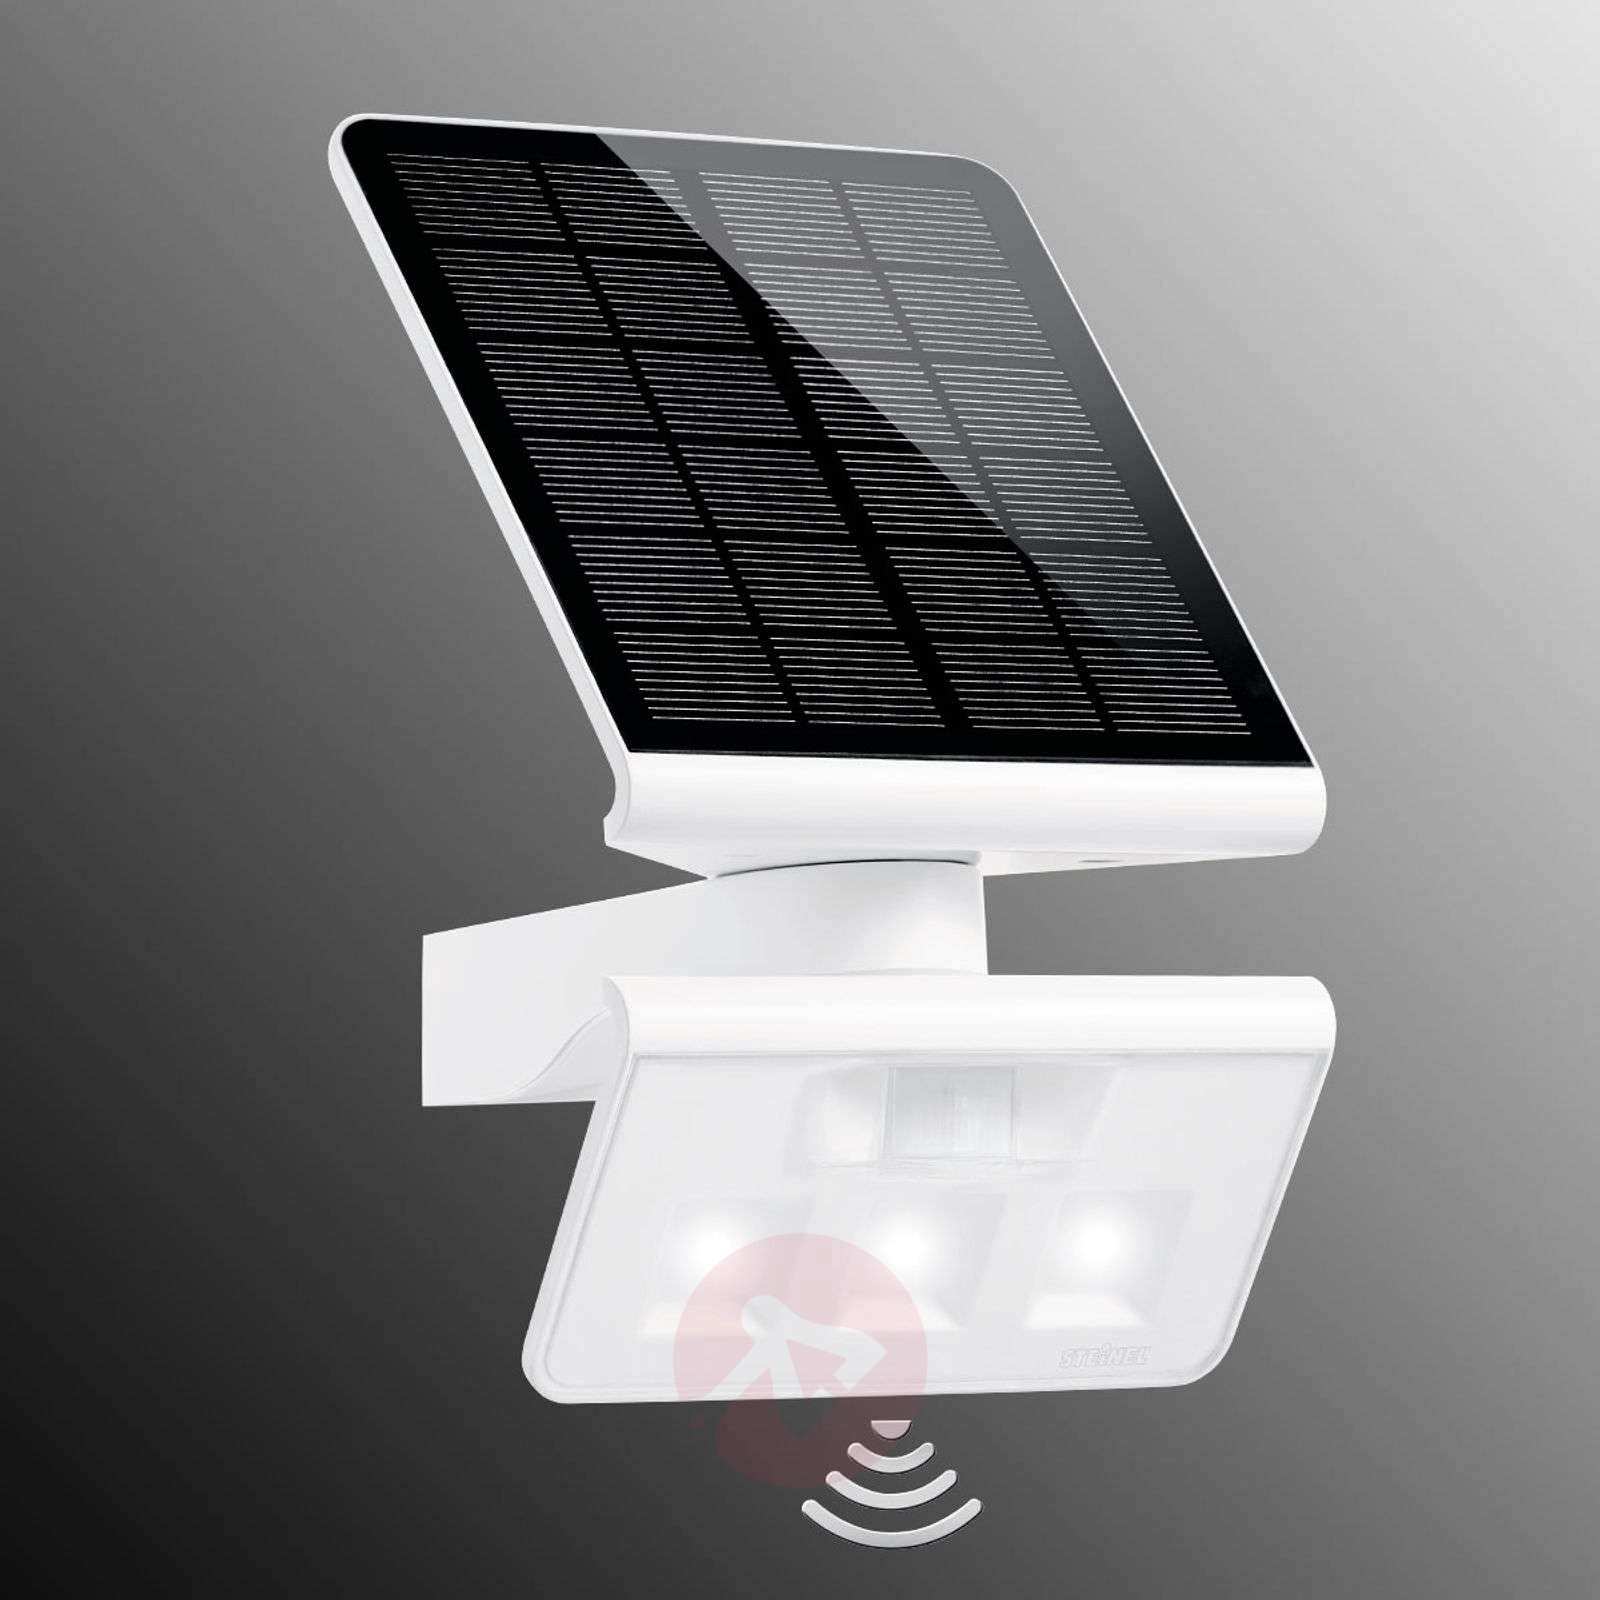 x-solar-l-s-solar-led-outdoor-wall-light-efficient-8505637-31 Stilvolle Steinel L 820 Led Ihf Dekorationen